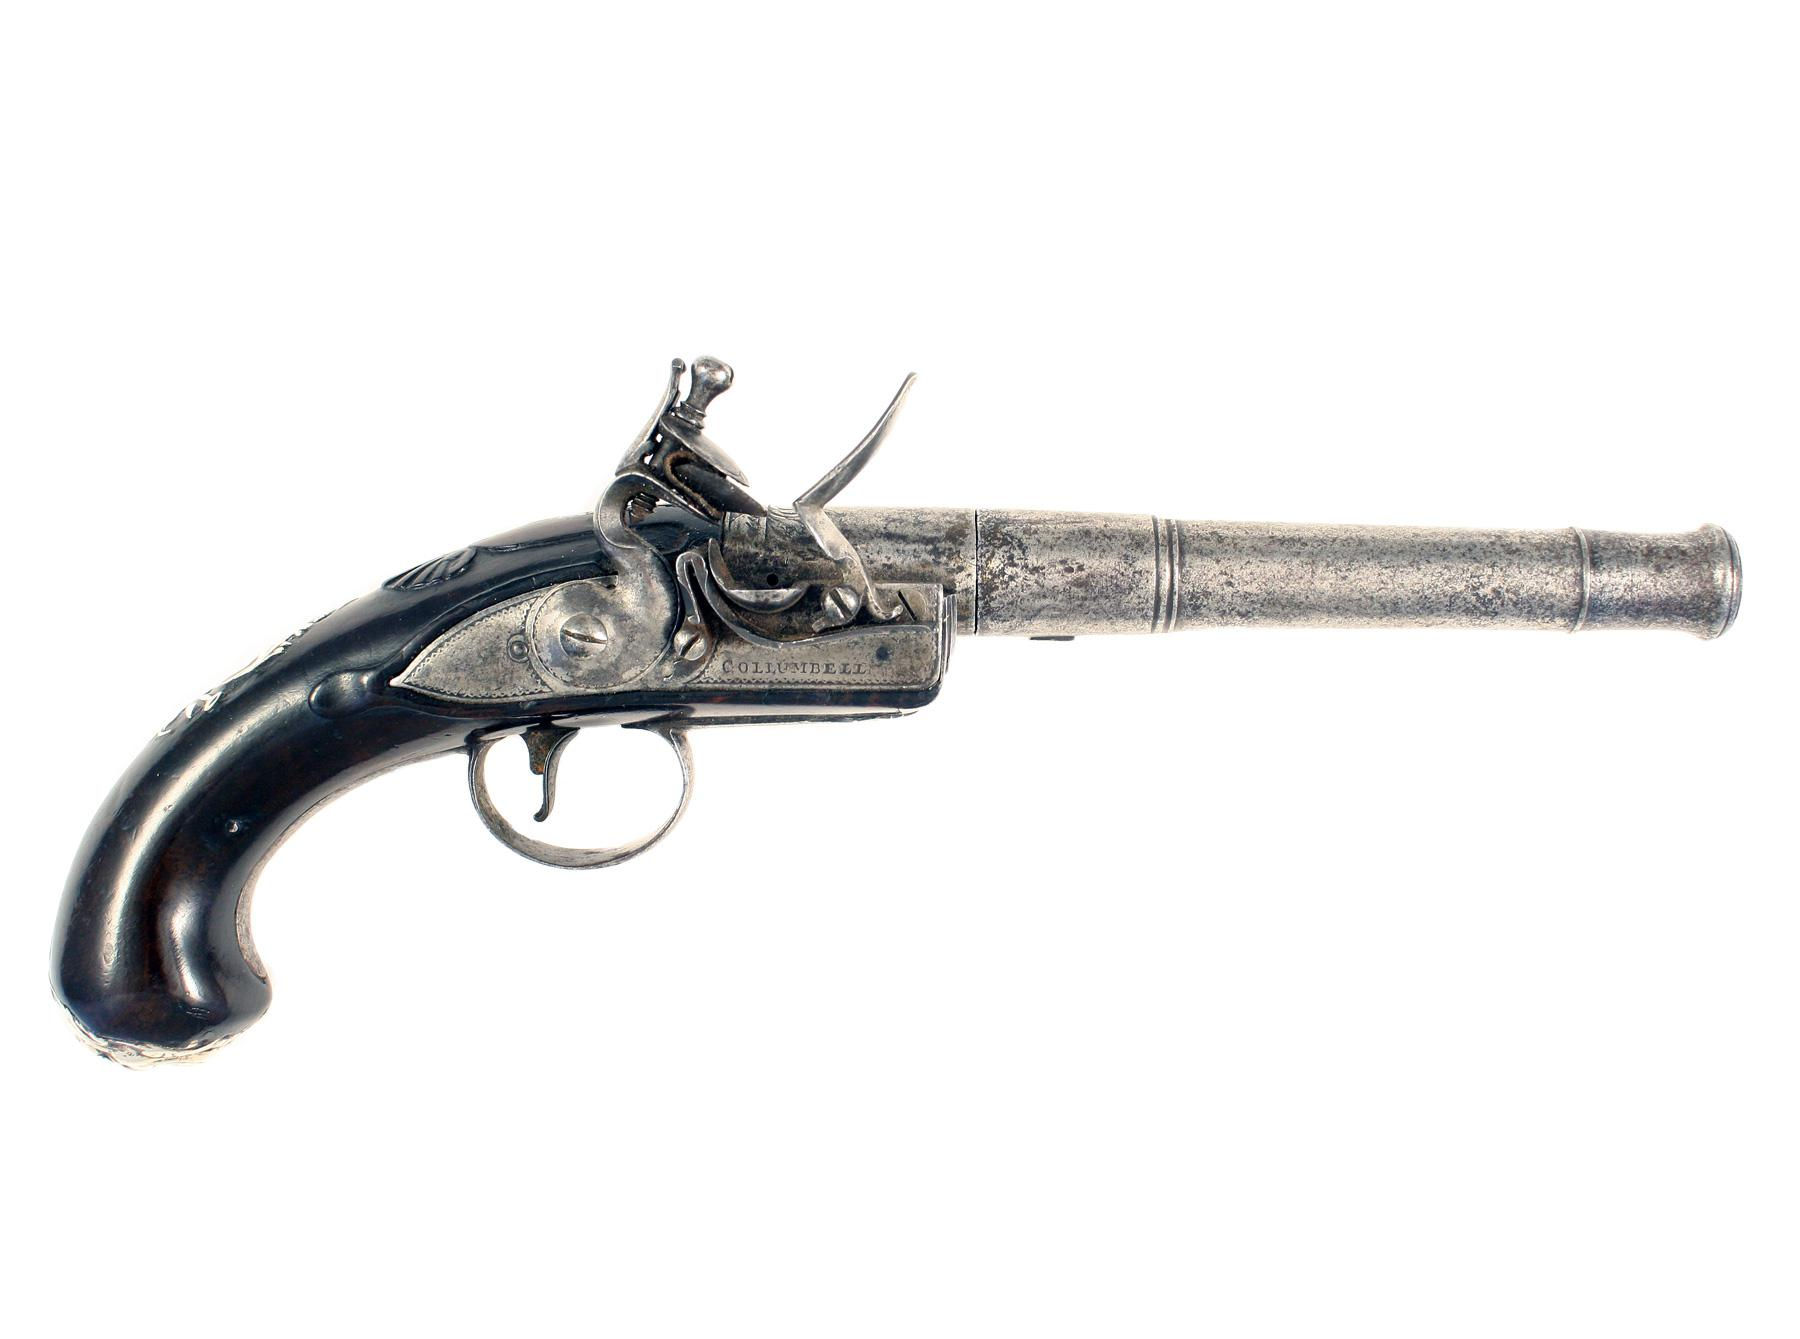 A 18-Bore Flintlock Queen Anne Pistol by Collumbell.